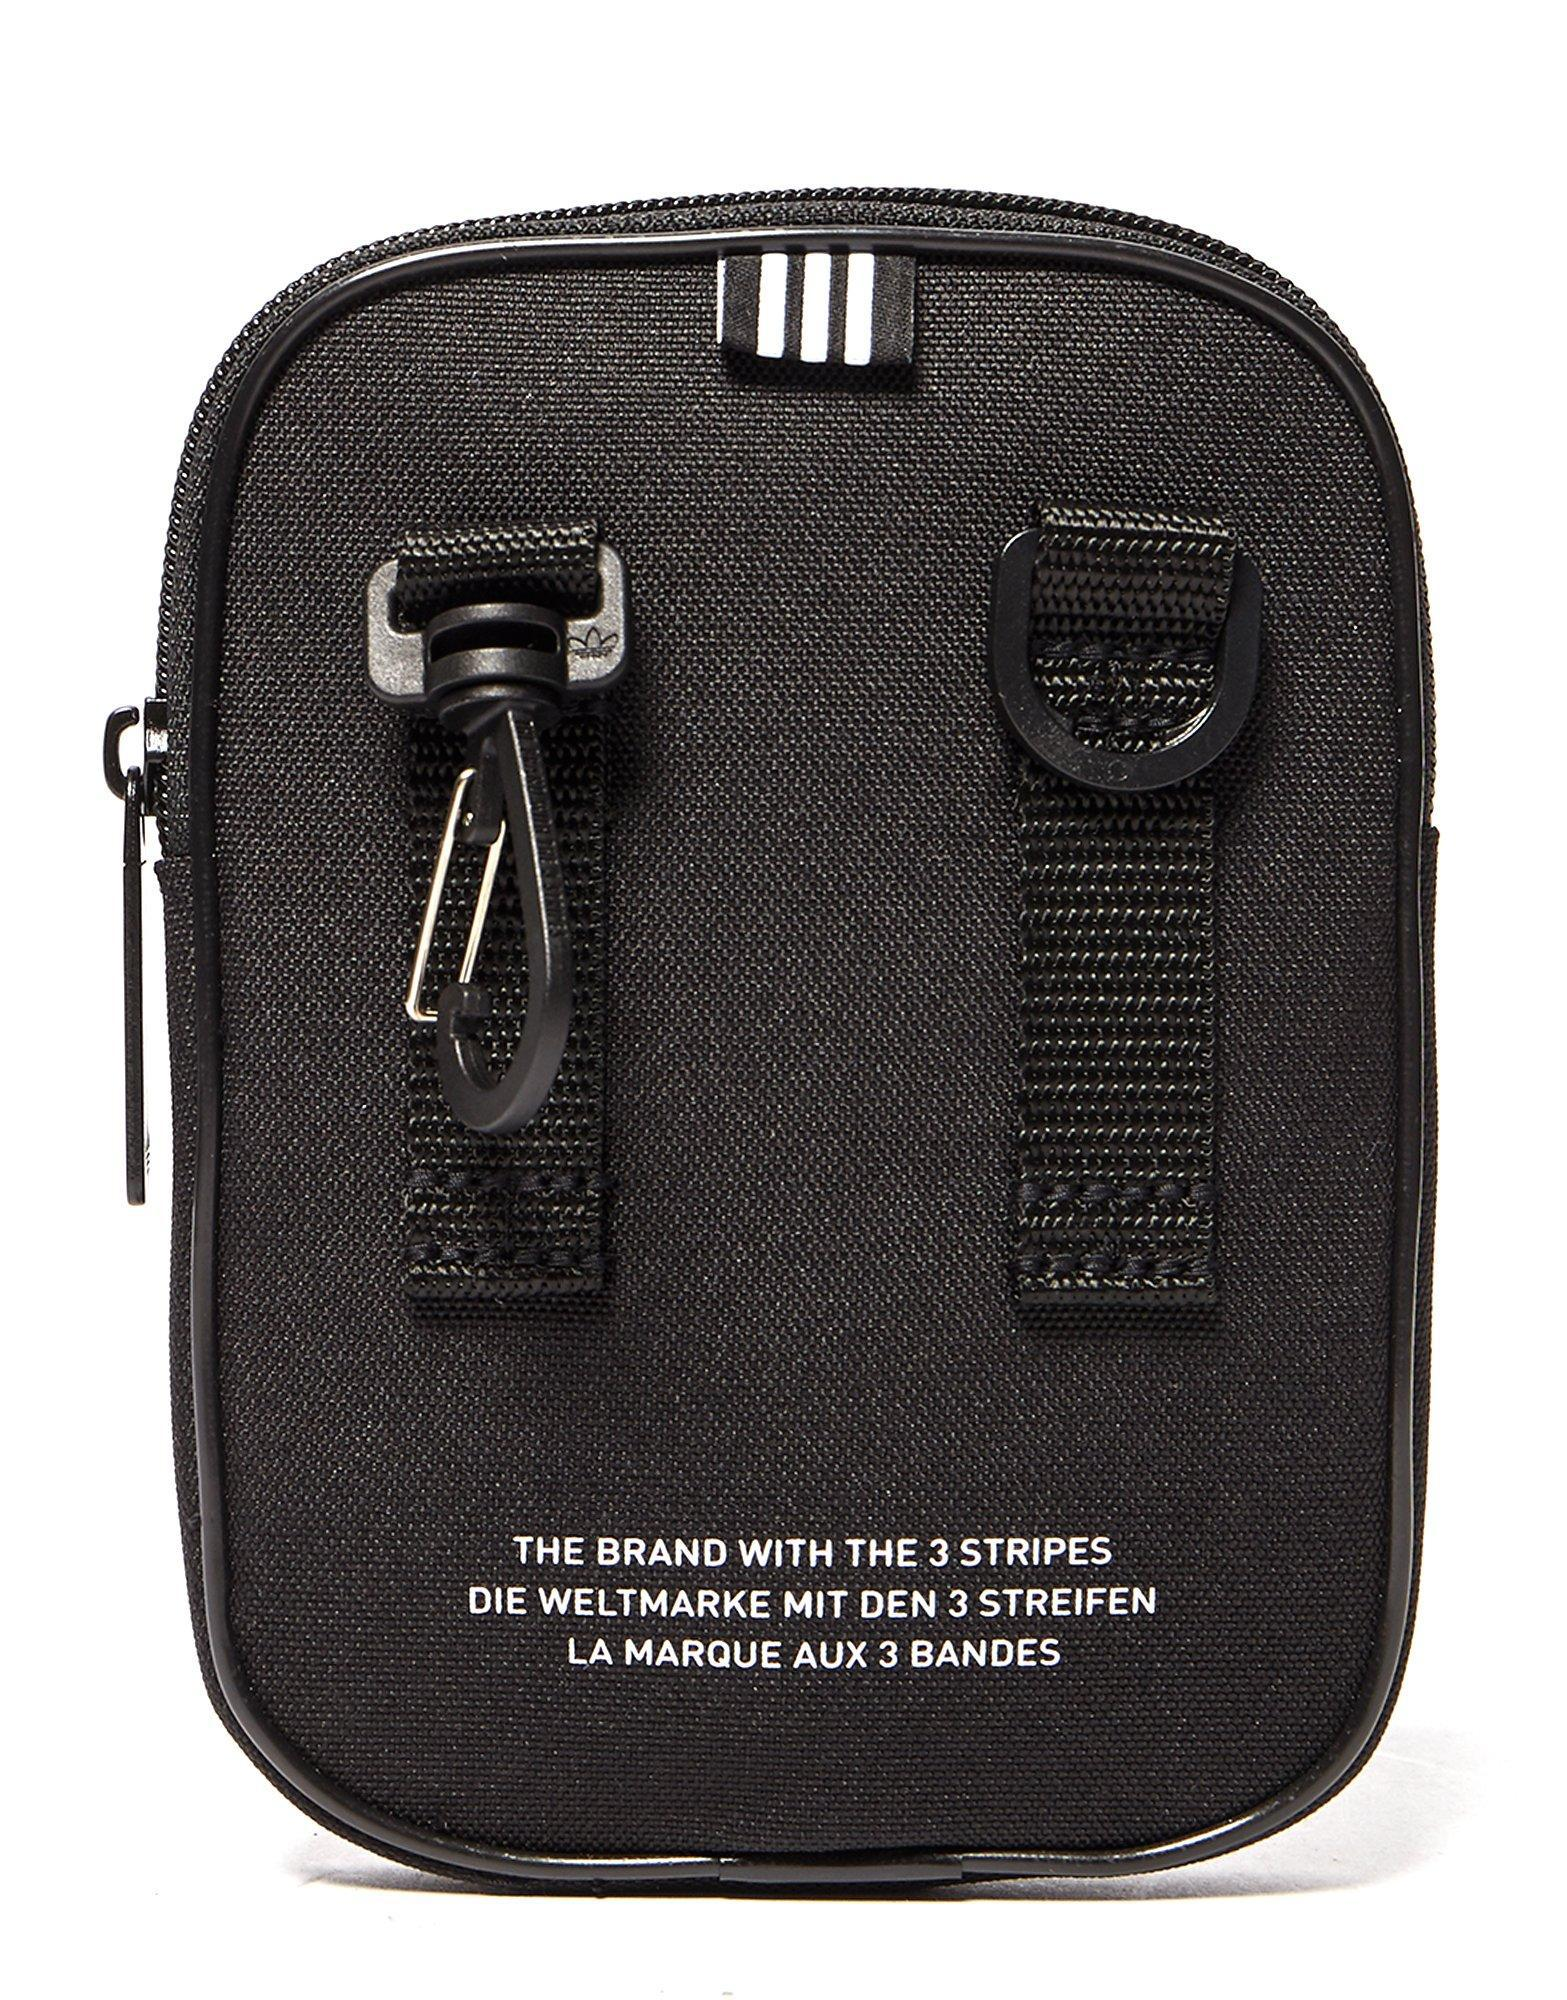 ... Lyst - Adidas Originals Trefoil Festival Bag in Black for Me purchase  cheap 213c3 8e1c0 ... 78118d7a0838c